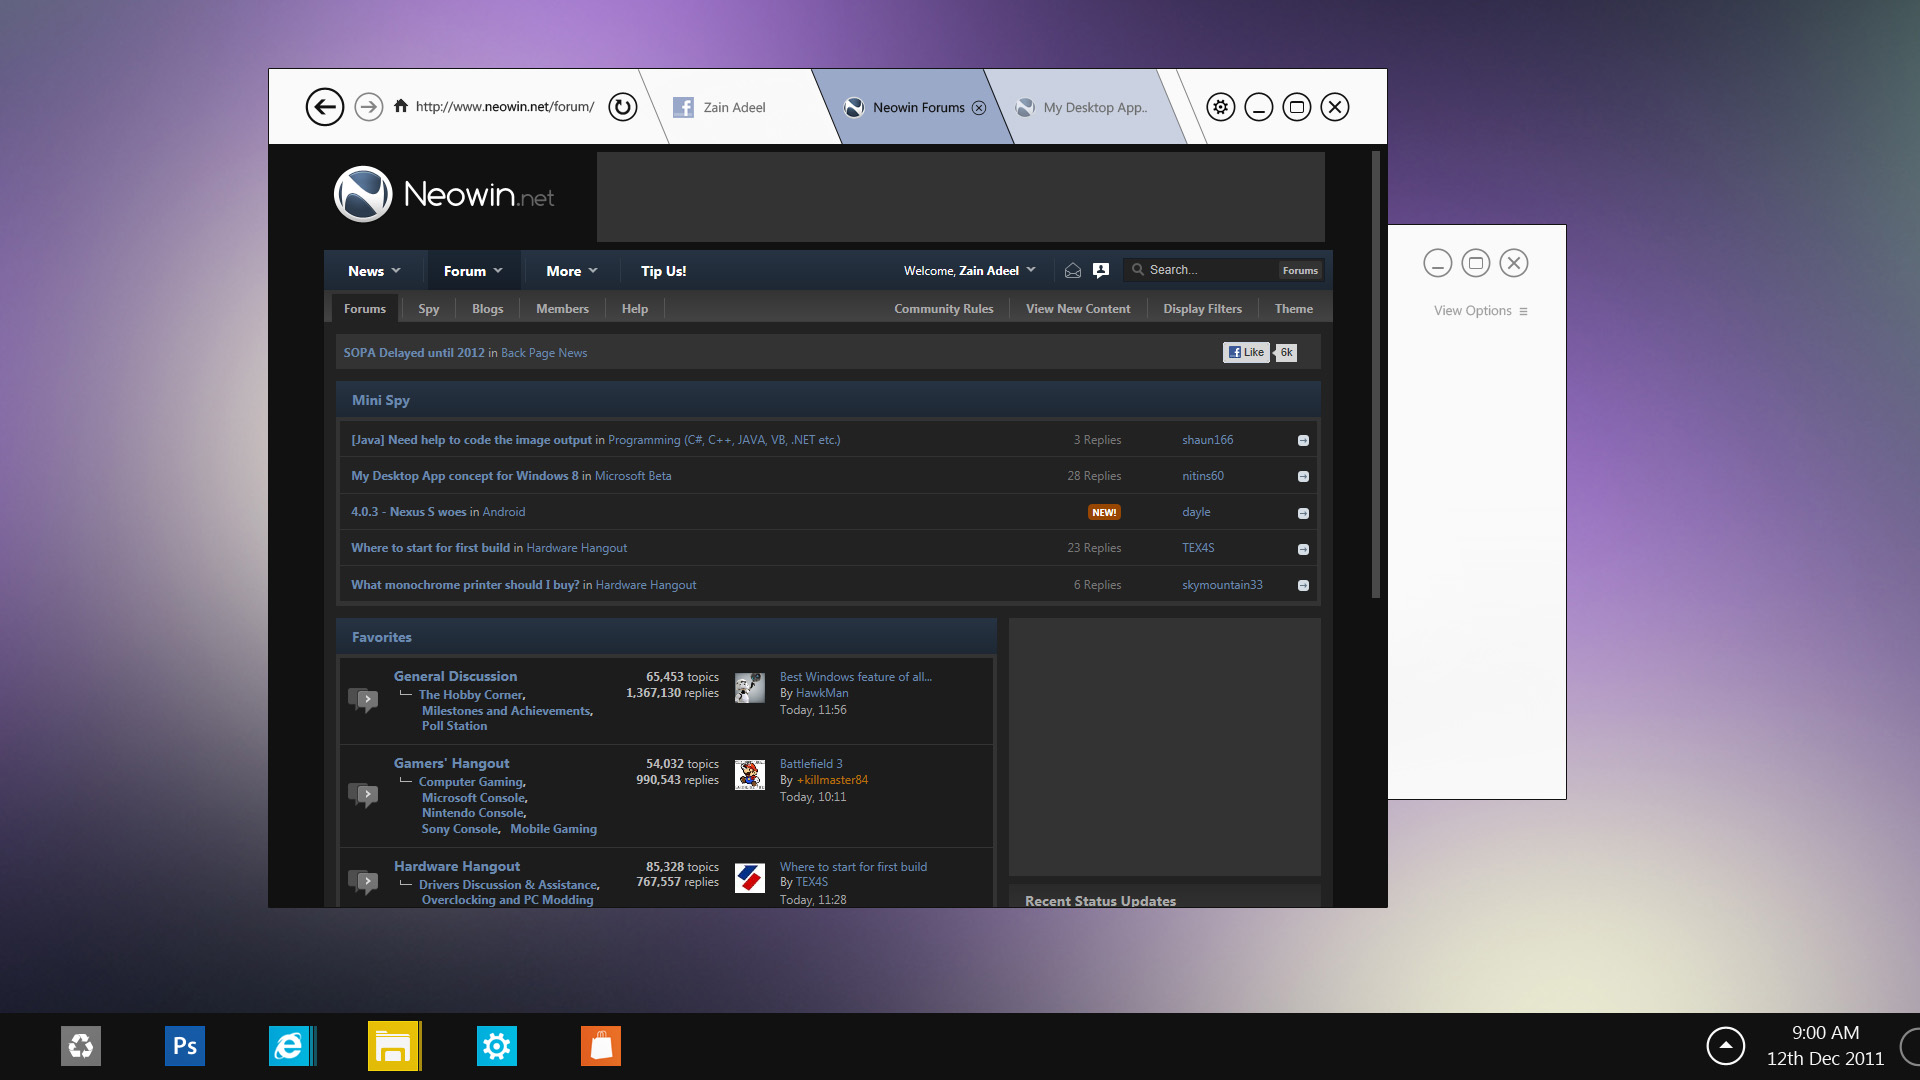 Windows 8 IE10 Desktop Concept by zainadeel